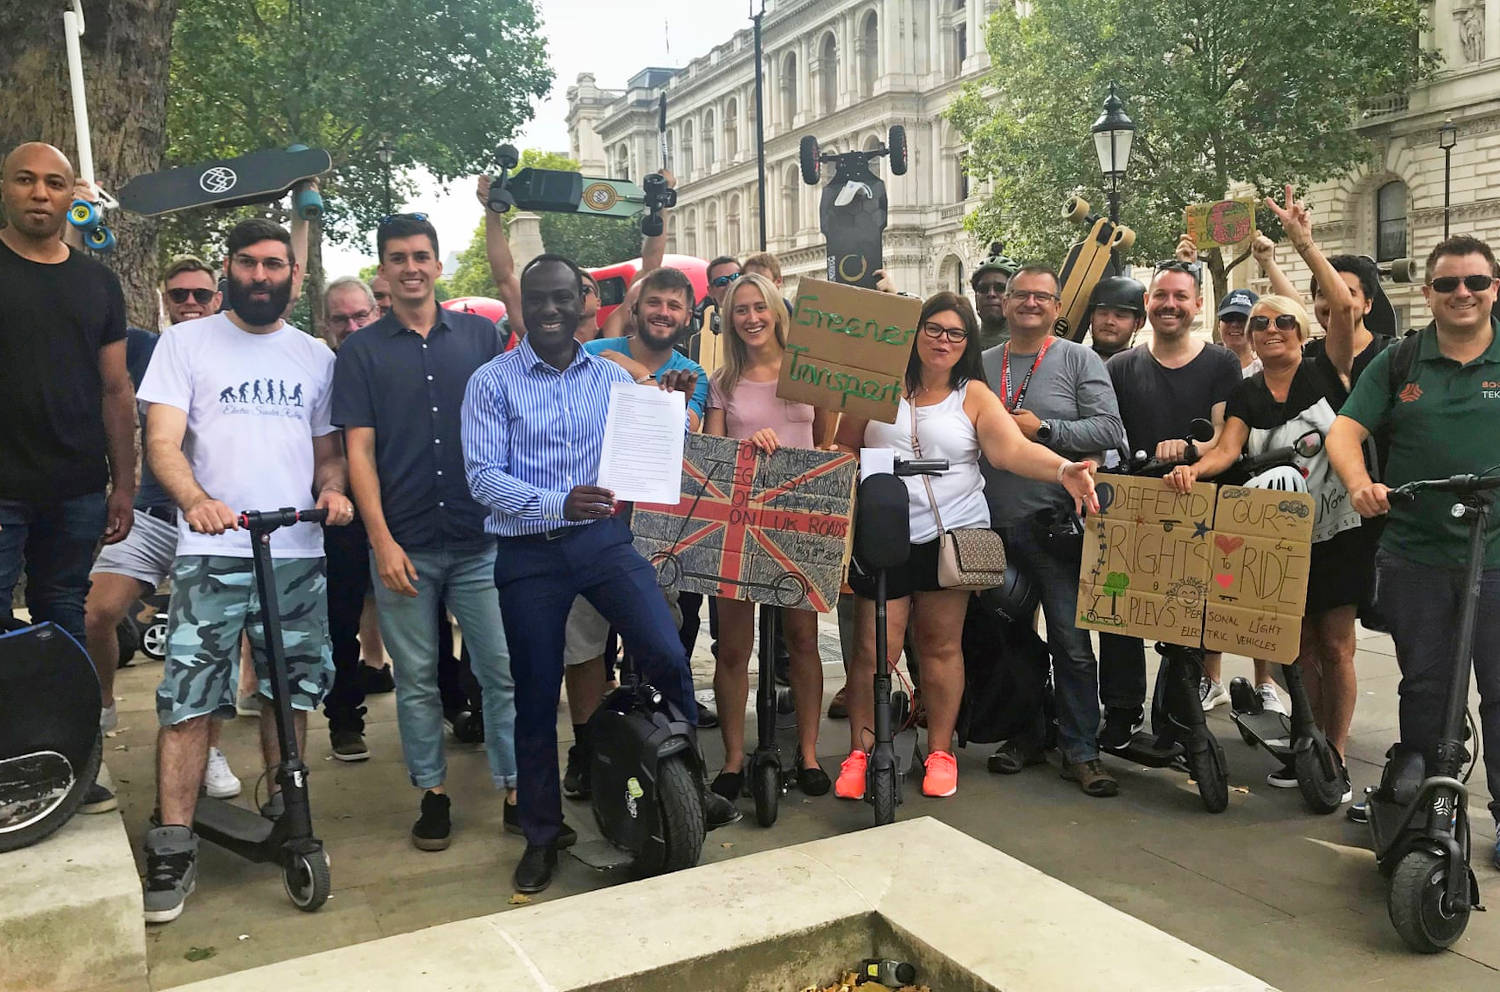 A group of smiling protesters stand proudly with their electric scooters, skateboards, and unicycles outside Downing Street.